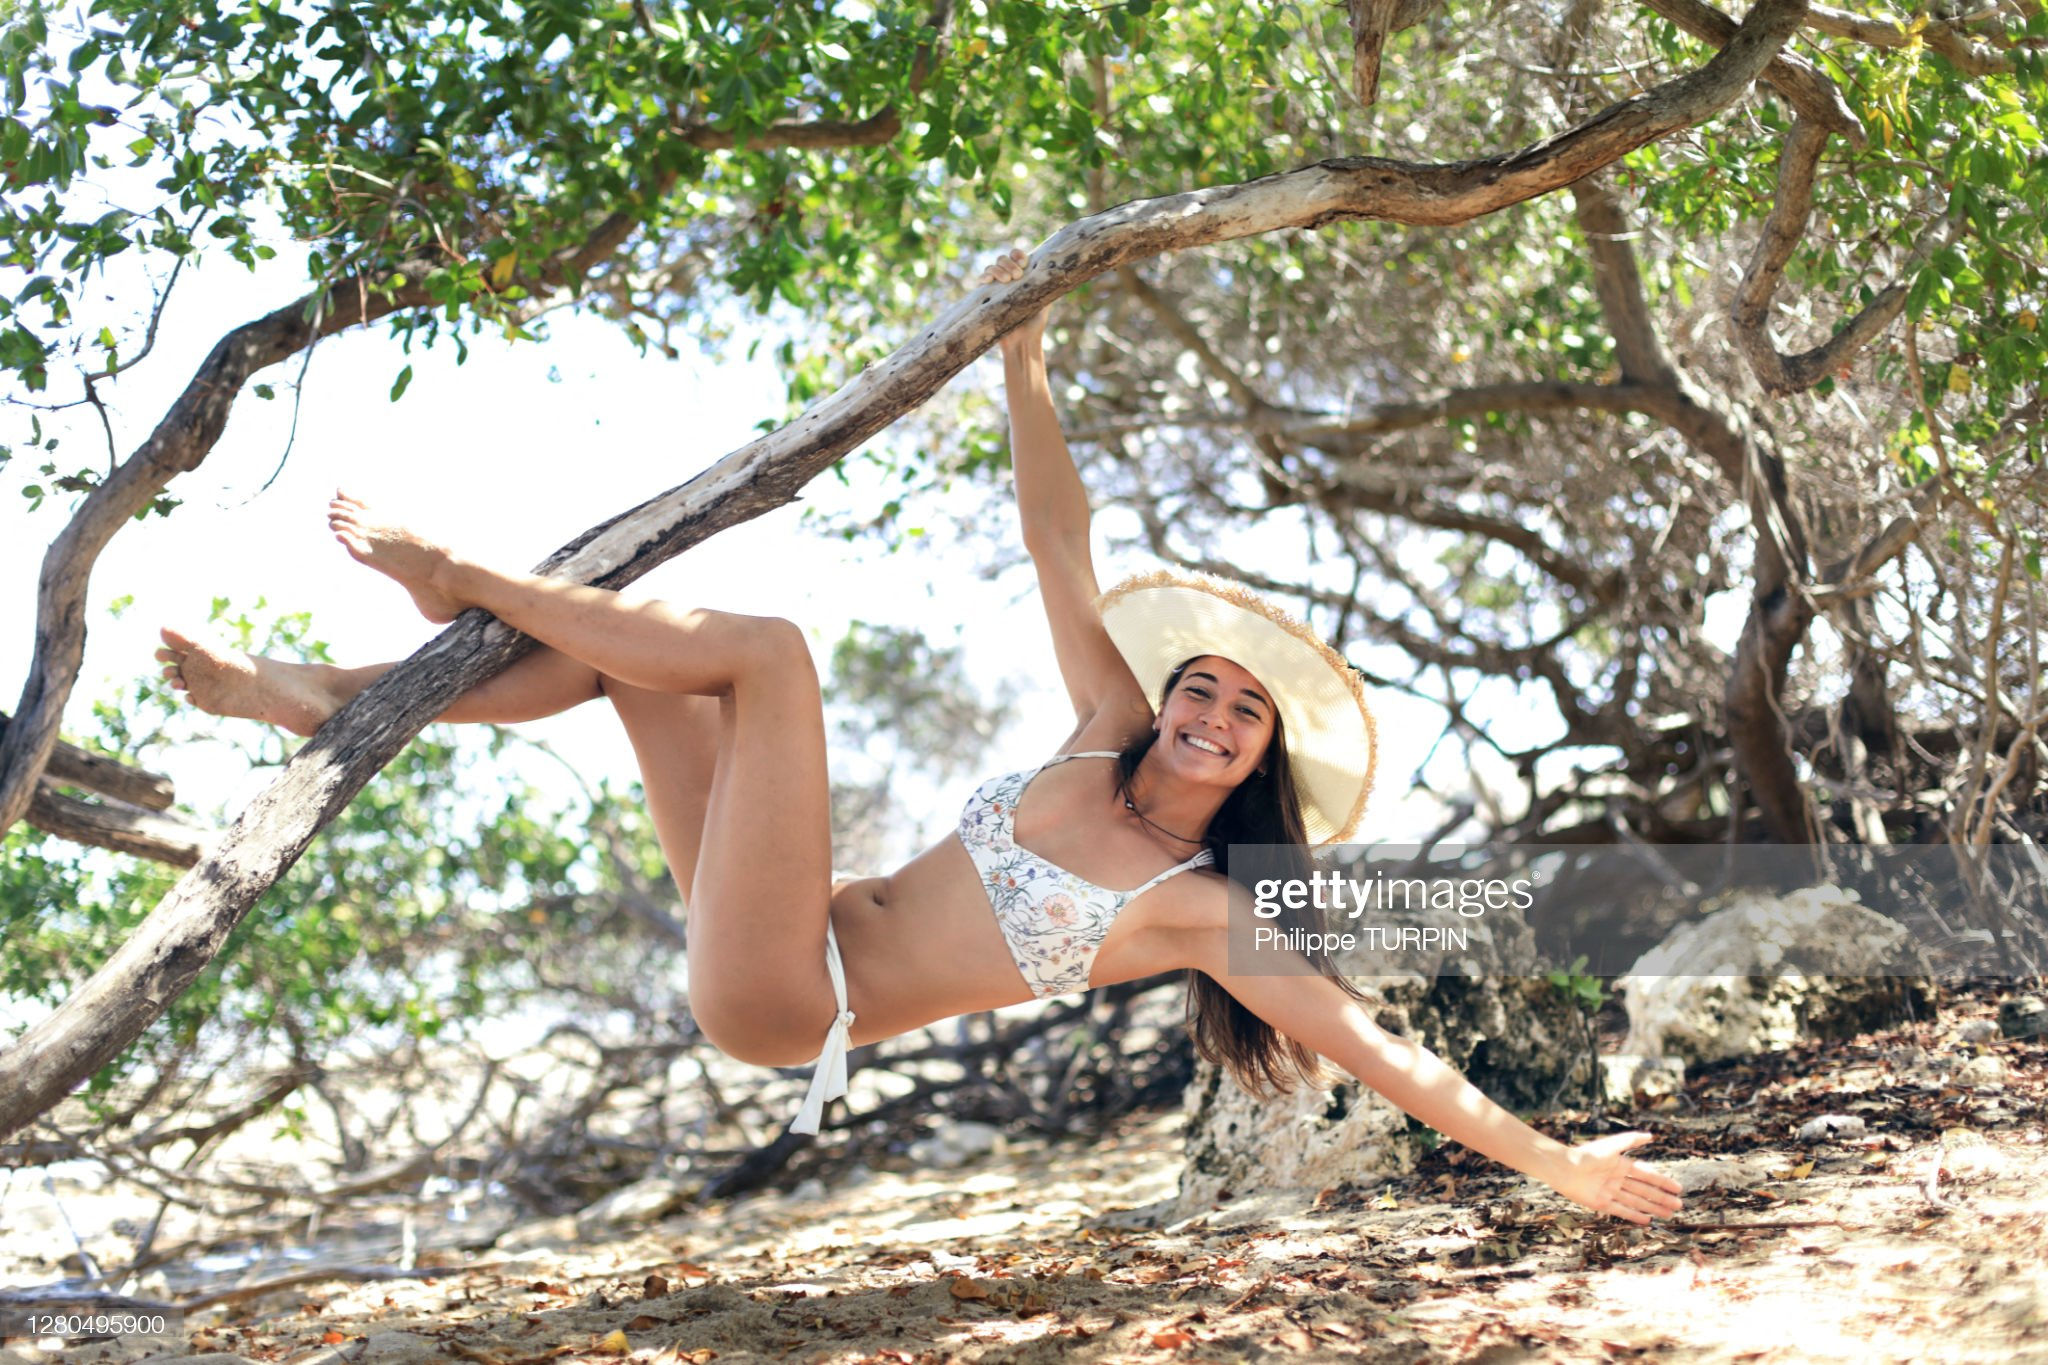 https://media.gettyimages.com/photos/young-woman-by-the-sea-picture-id1280495900?s=2048x2048